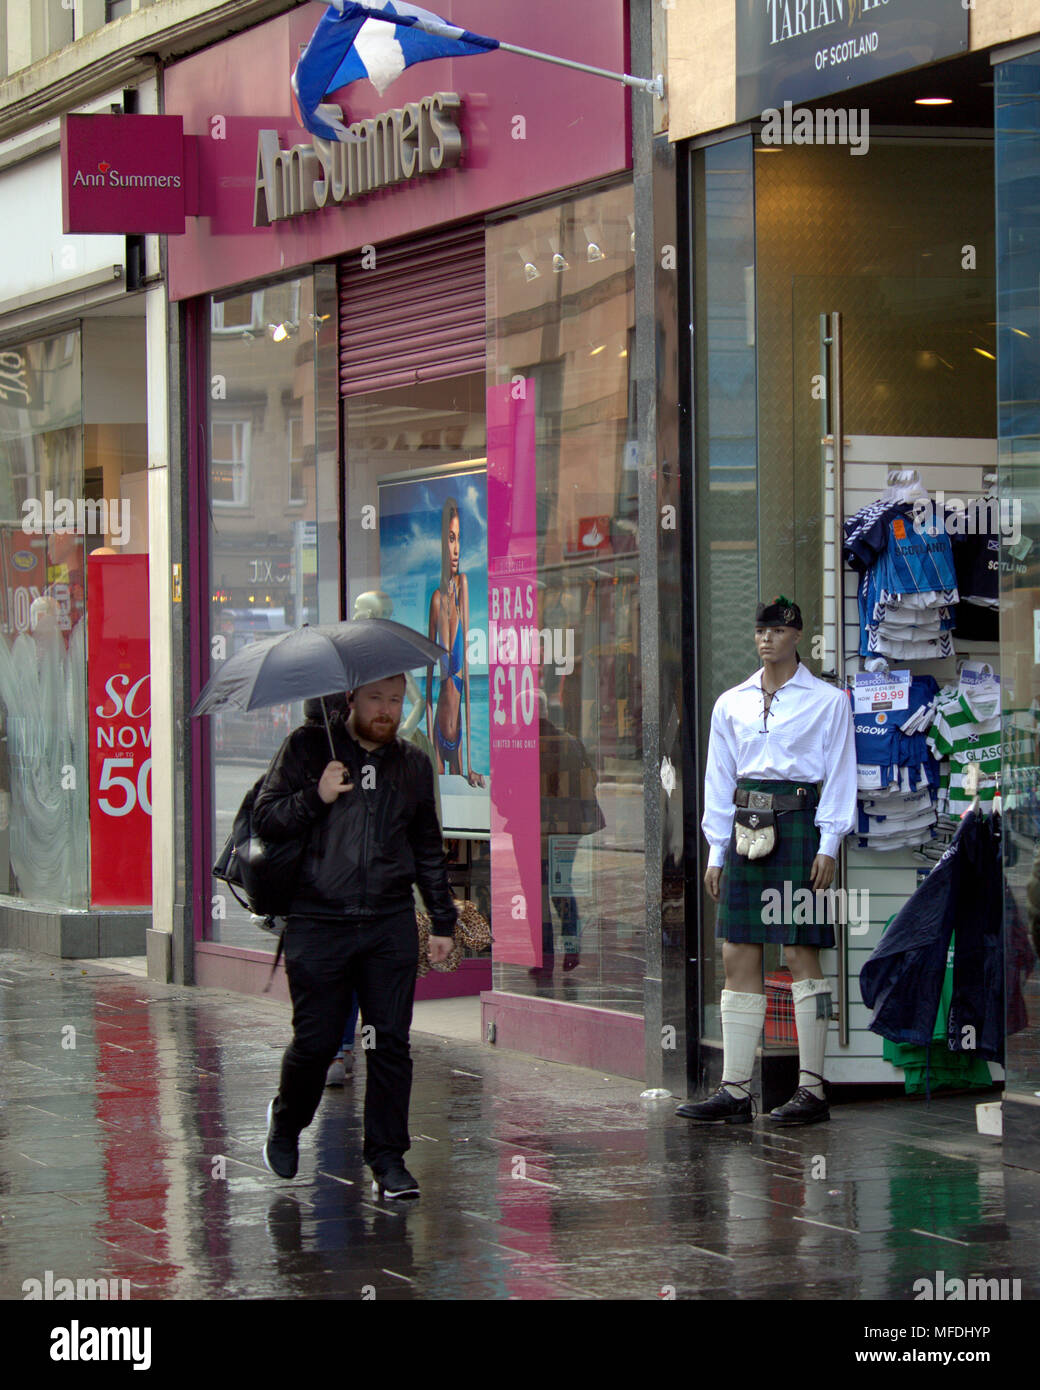 Glasgow, Scotland, UK 25th April. UK Weather:man with umbrella brolly in rain walks past kilt Scottish manikin dummy with Ann summers sign summer parody Sunshine and showers wet pavements street shopping as the locals and tourists enjoy the beginning of summer. Gerard Ferry/Alamy news - Stock Image